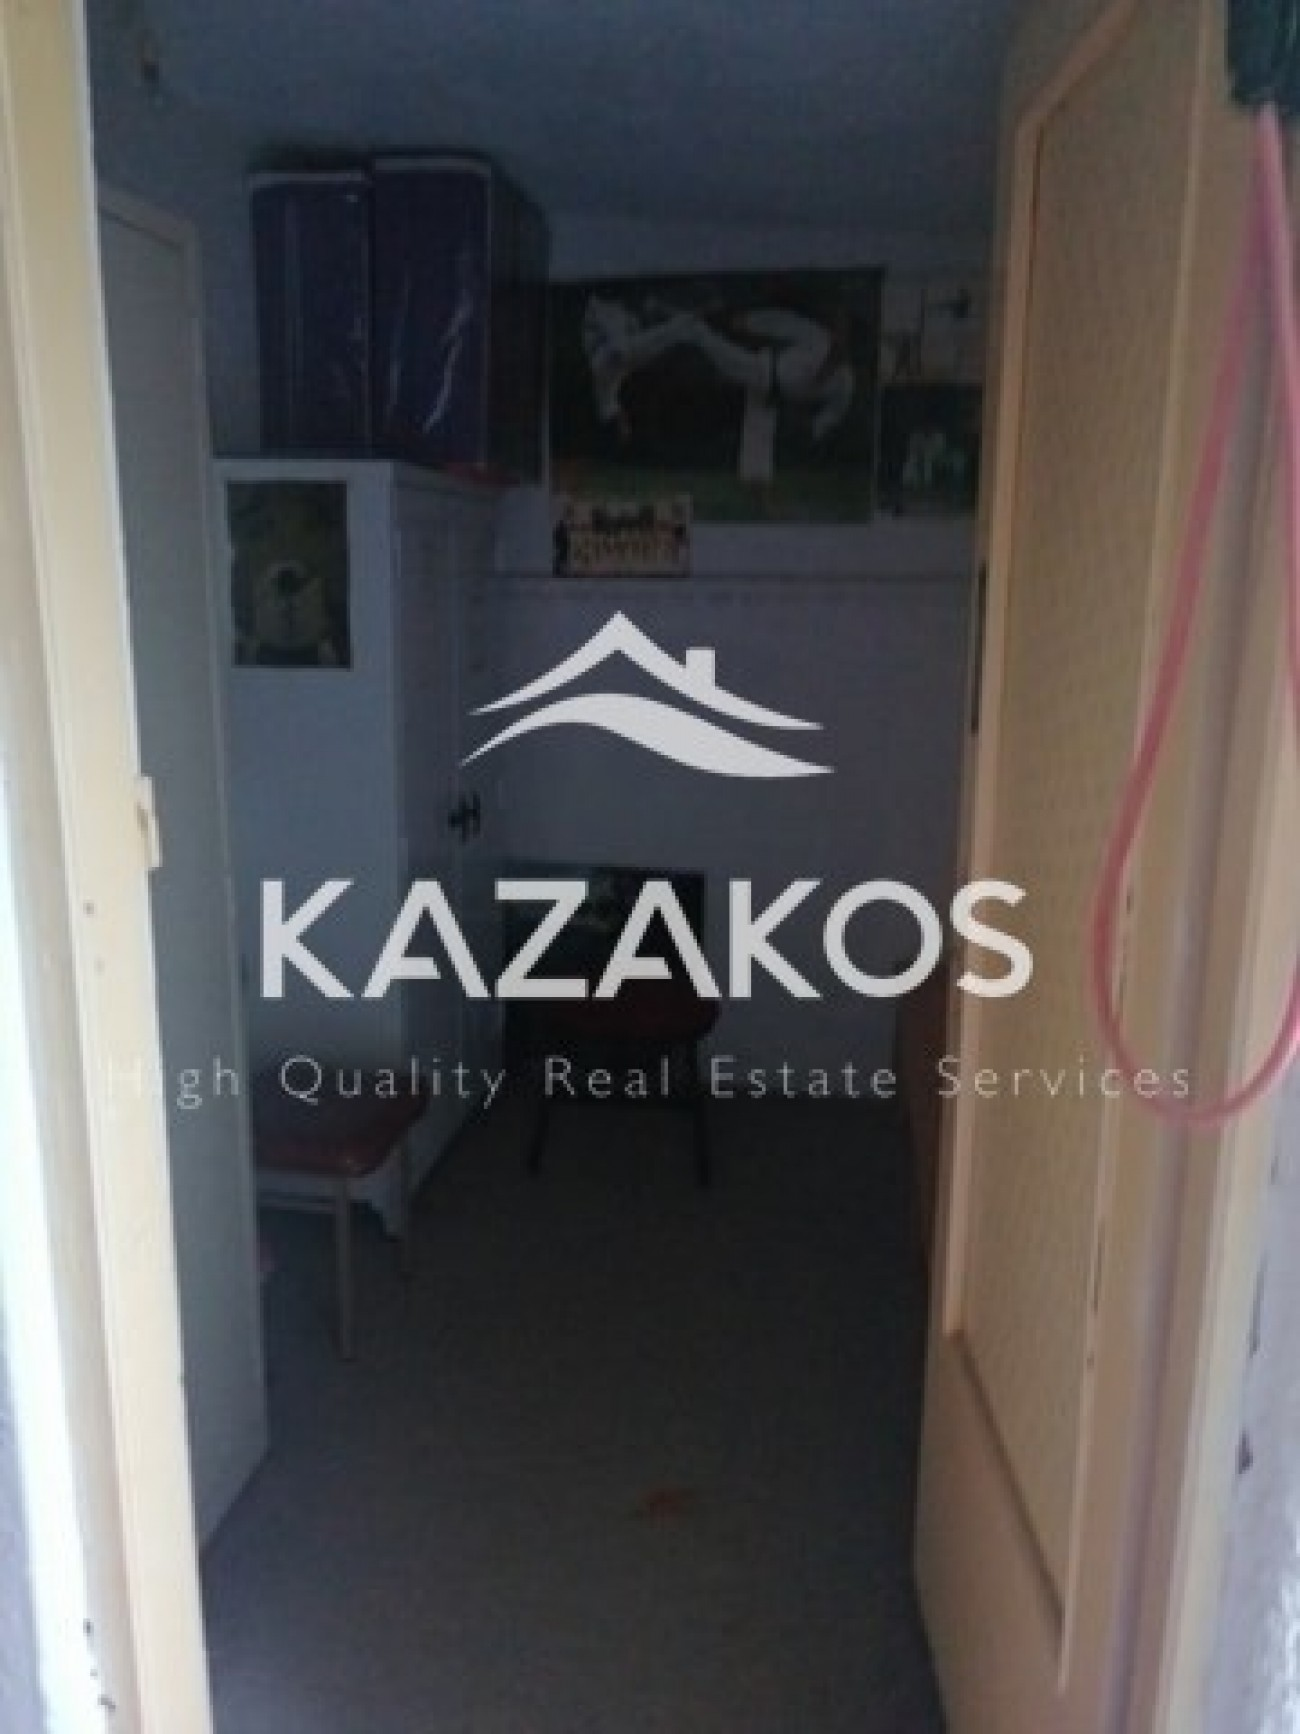 Commercial Other for Rent in Central & West Region of Athens, Greece